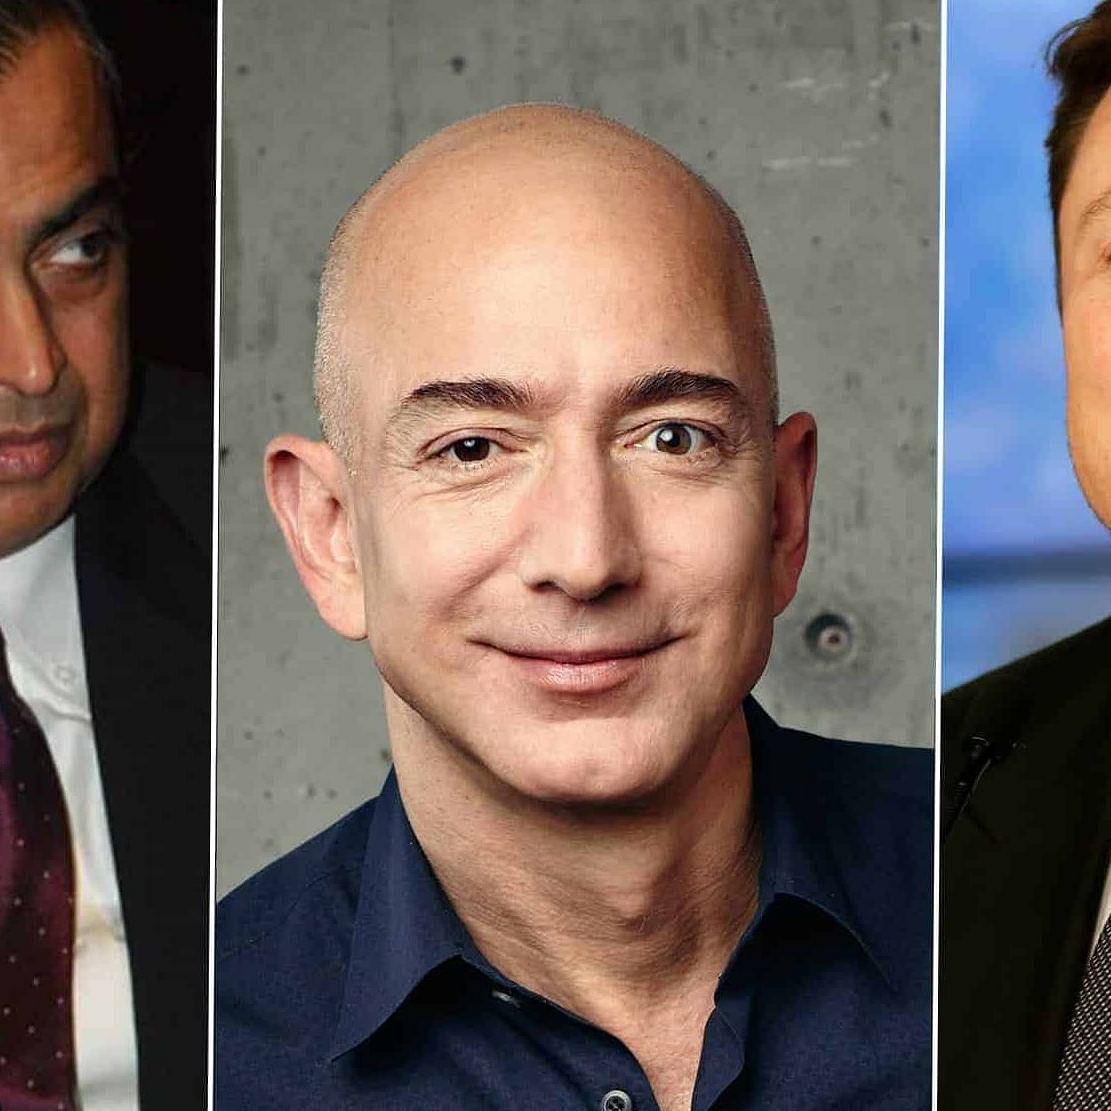 (From left) Mukesh Ambani, Jeff Bezos and Elon Musk